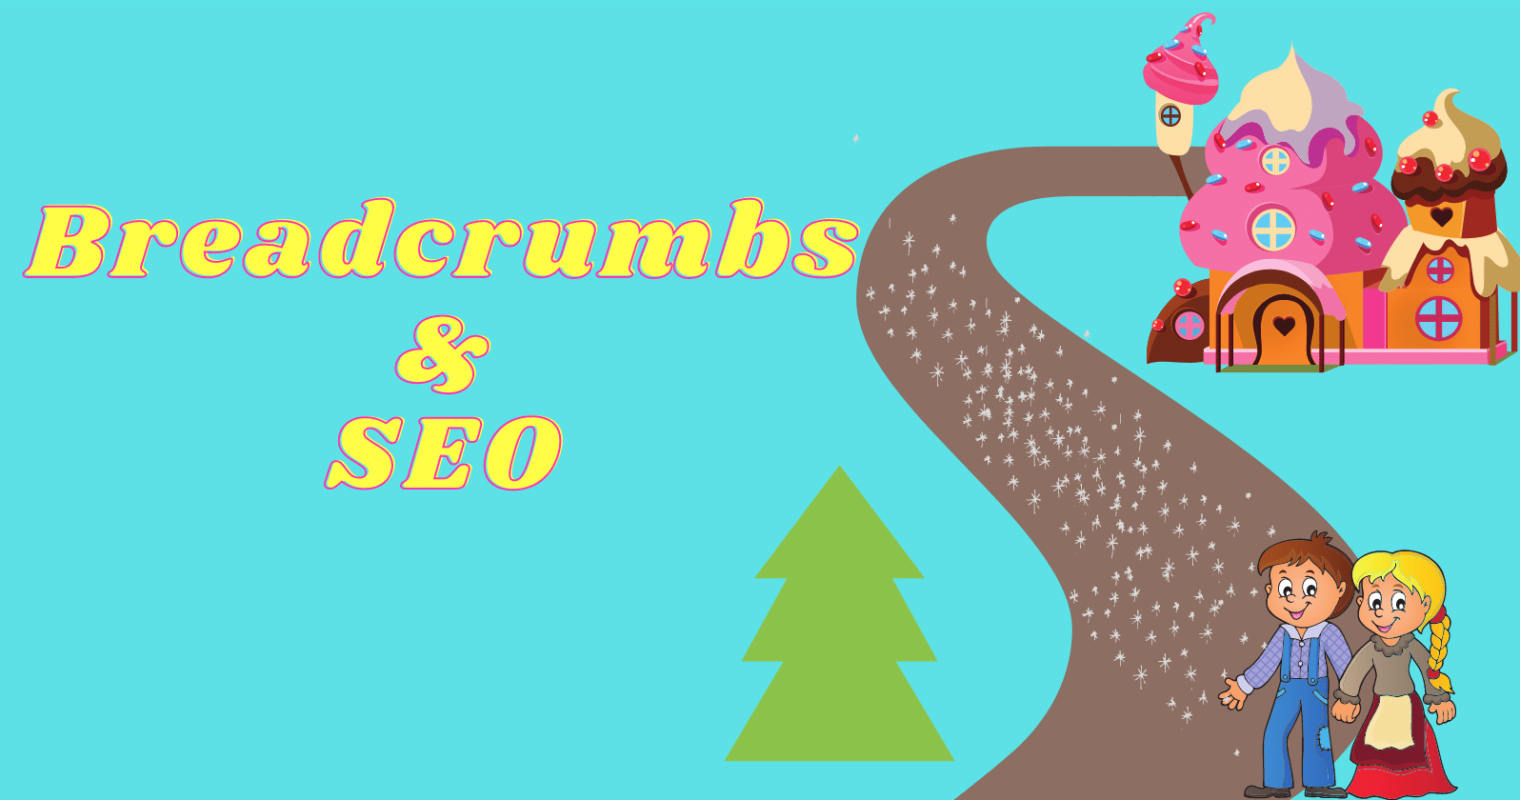 What Are Breadcrumbs & Why Do They Matter for SEO?